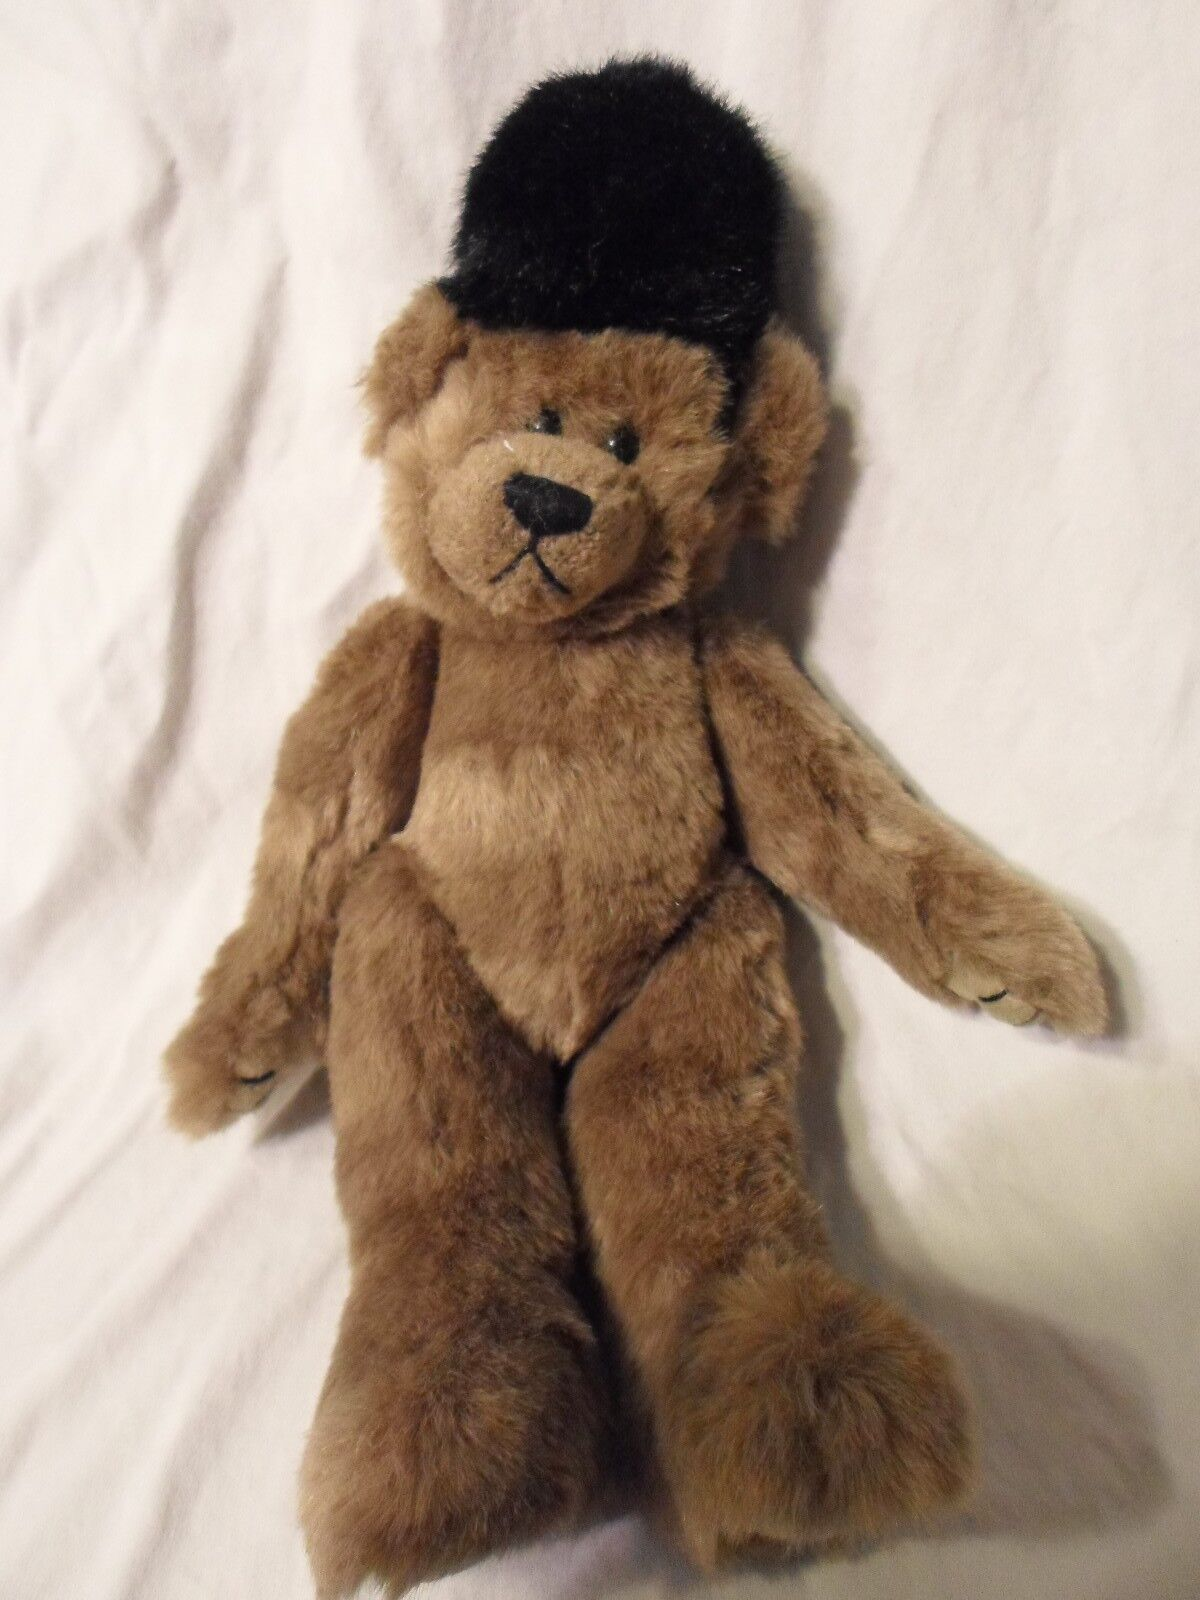 Ty 1993 Teddy Bear Toy Soldier Hat Jointed 15  Plush Soft Toy Stuffed Animal